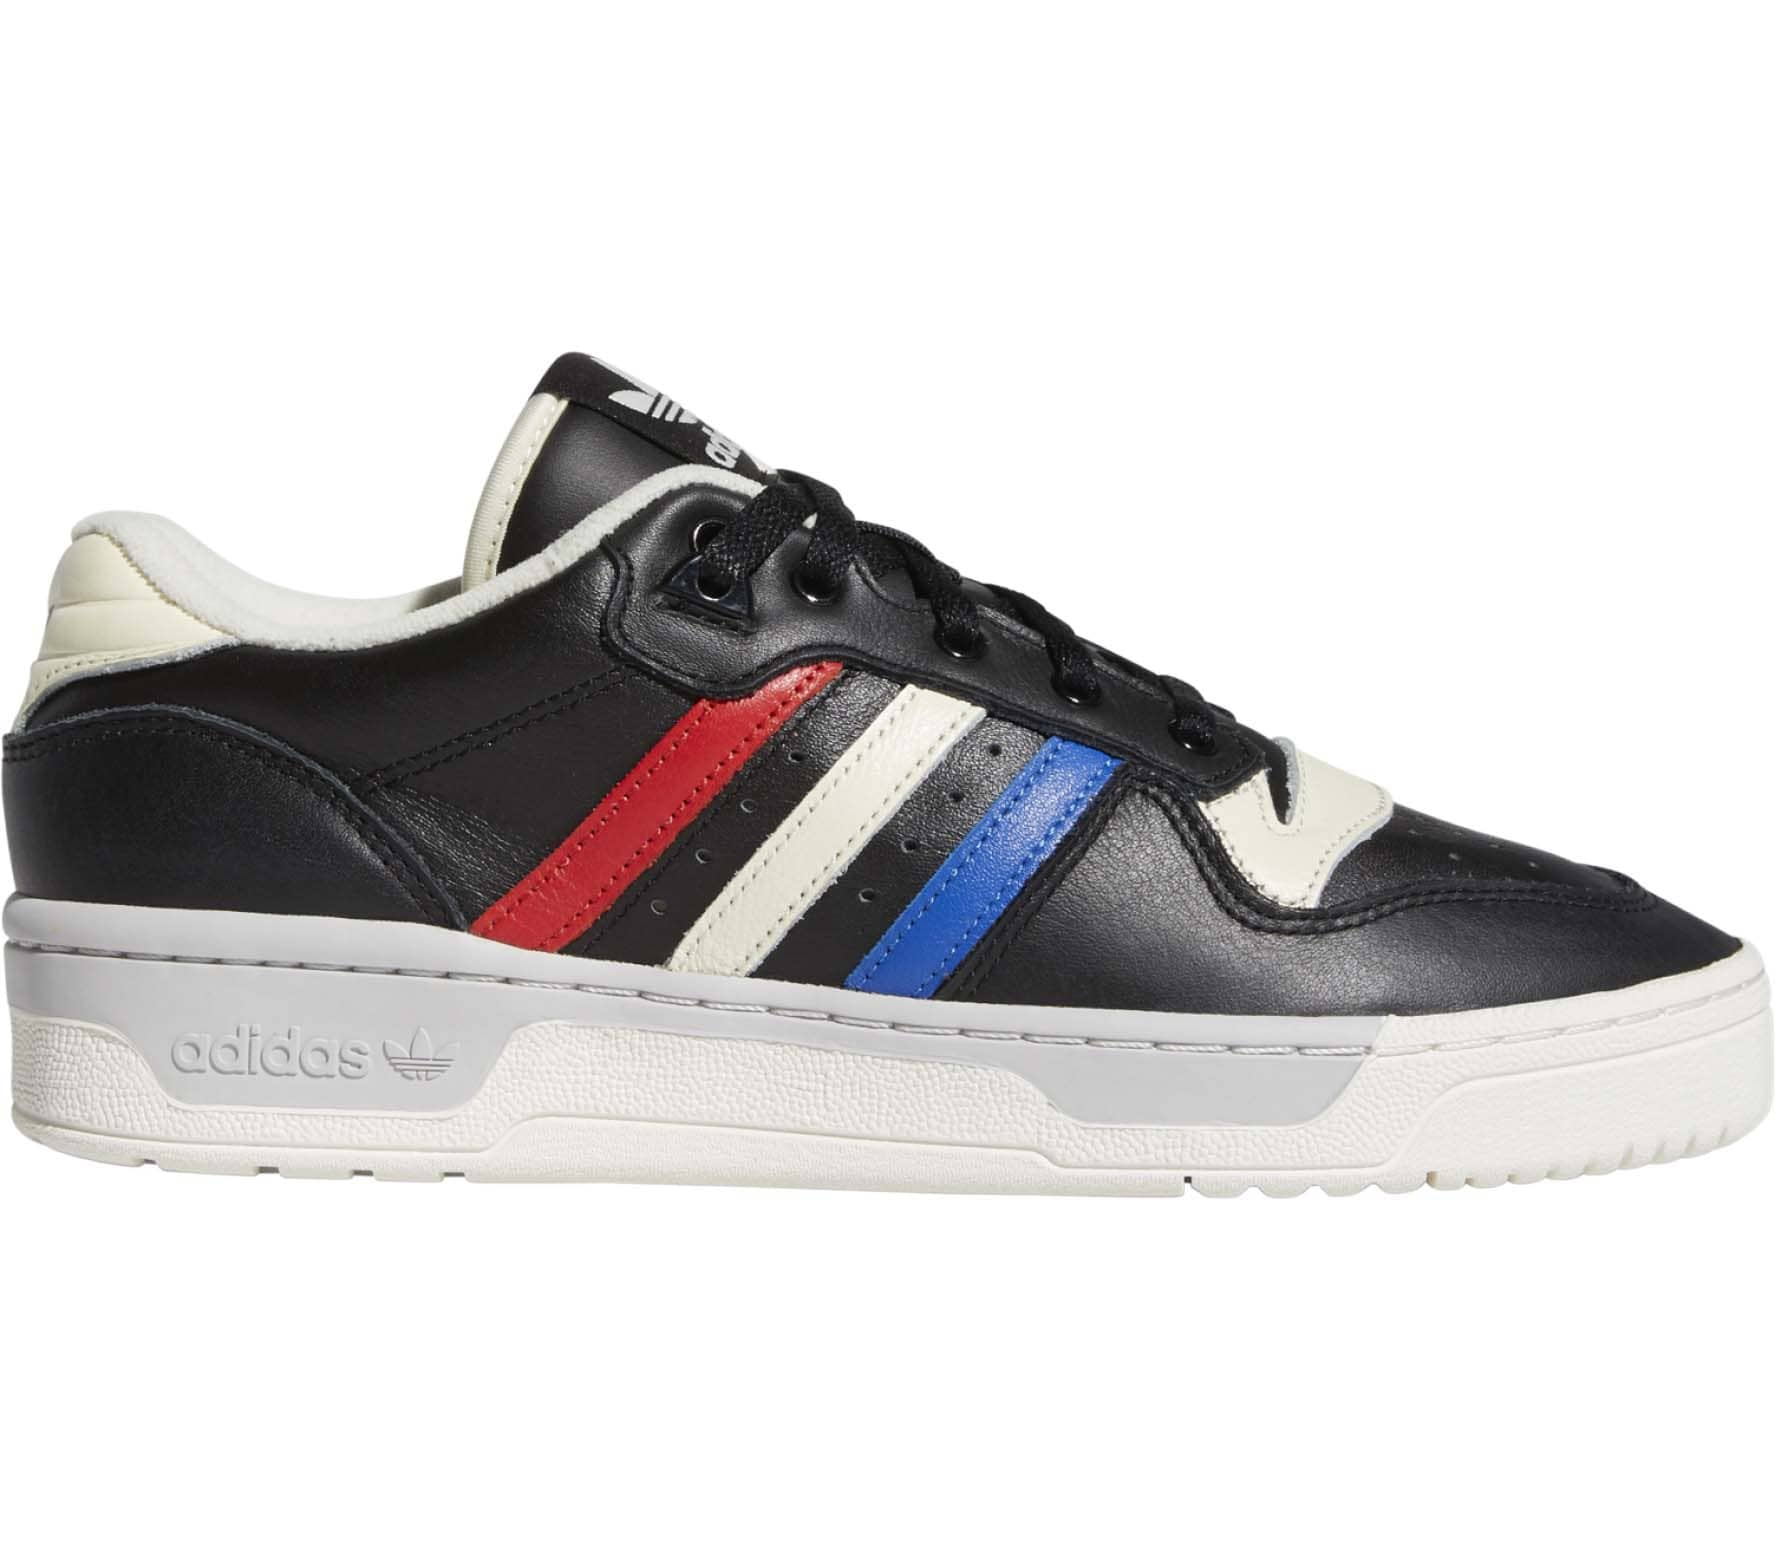 Low Herren Originals Rivalry Schwarz Sneaker Adidas eEHIb2DWY9